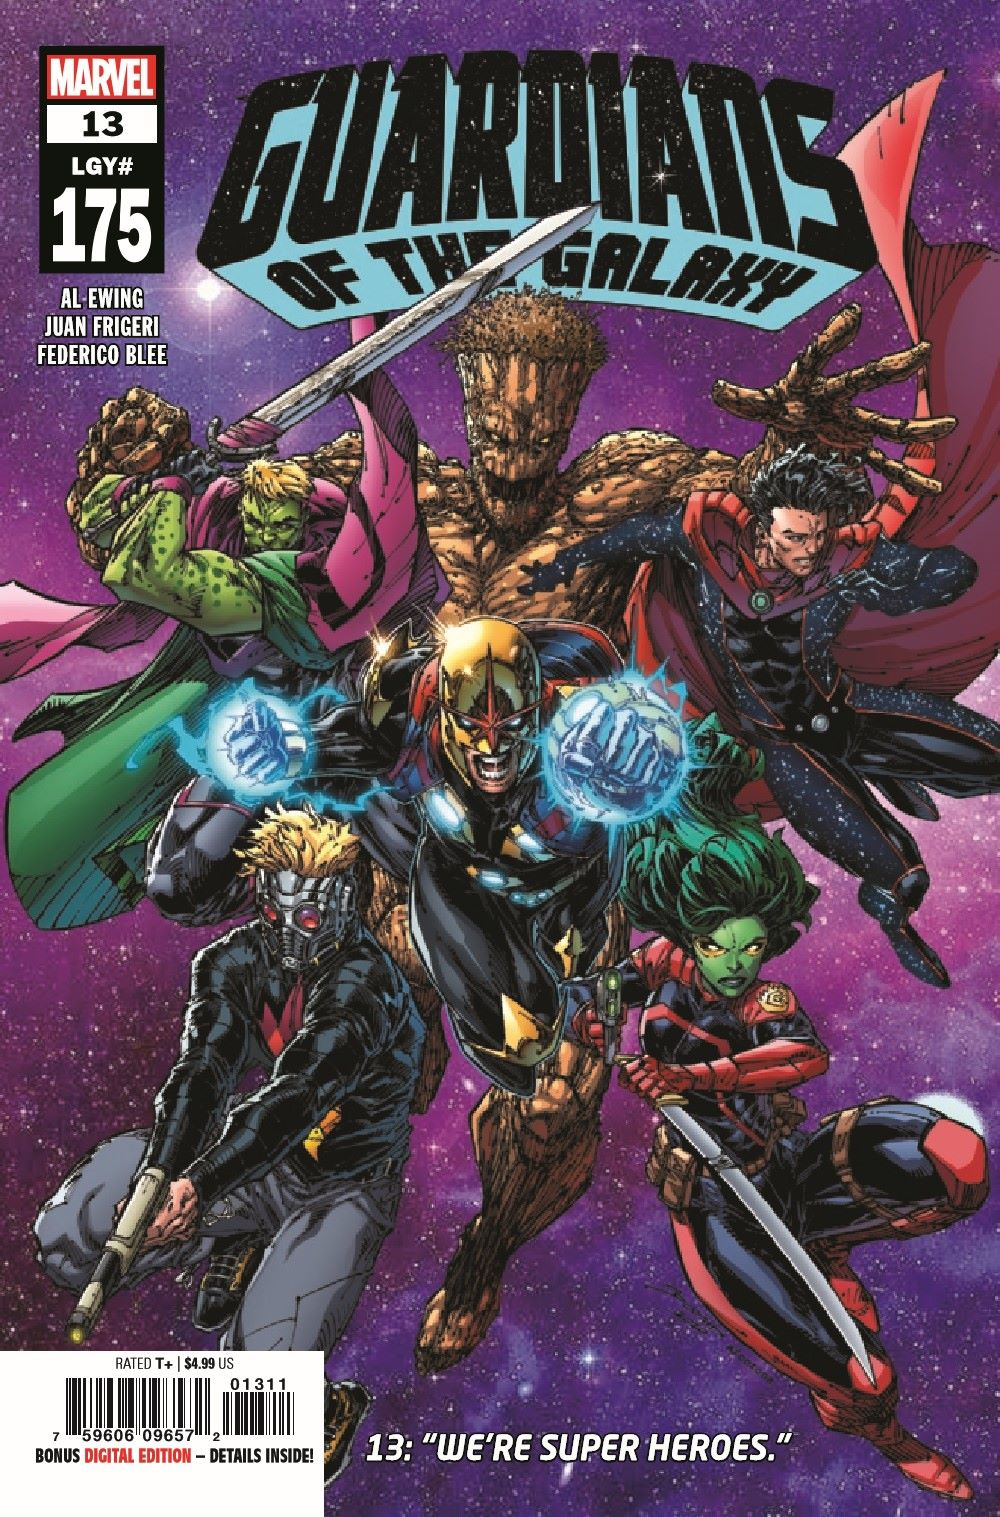 GARGAL2020013_Preview-1 ComicList Previews: GUARDIANS OF THE GALAXY #13